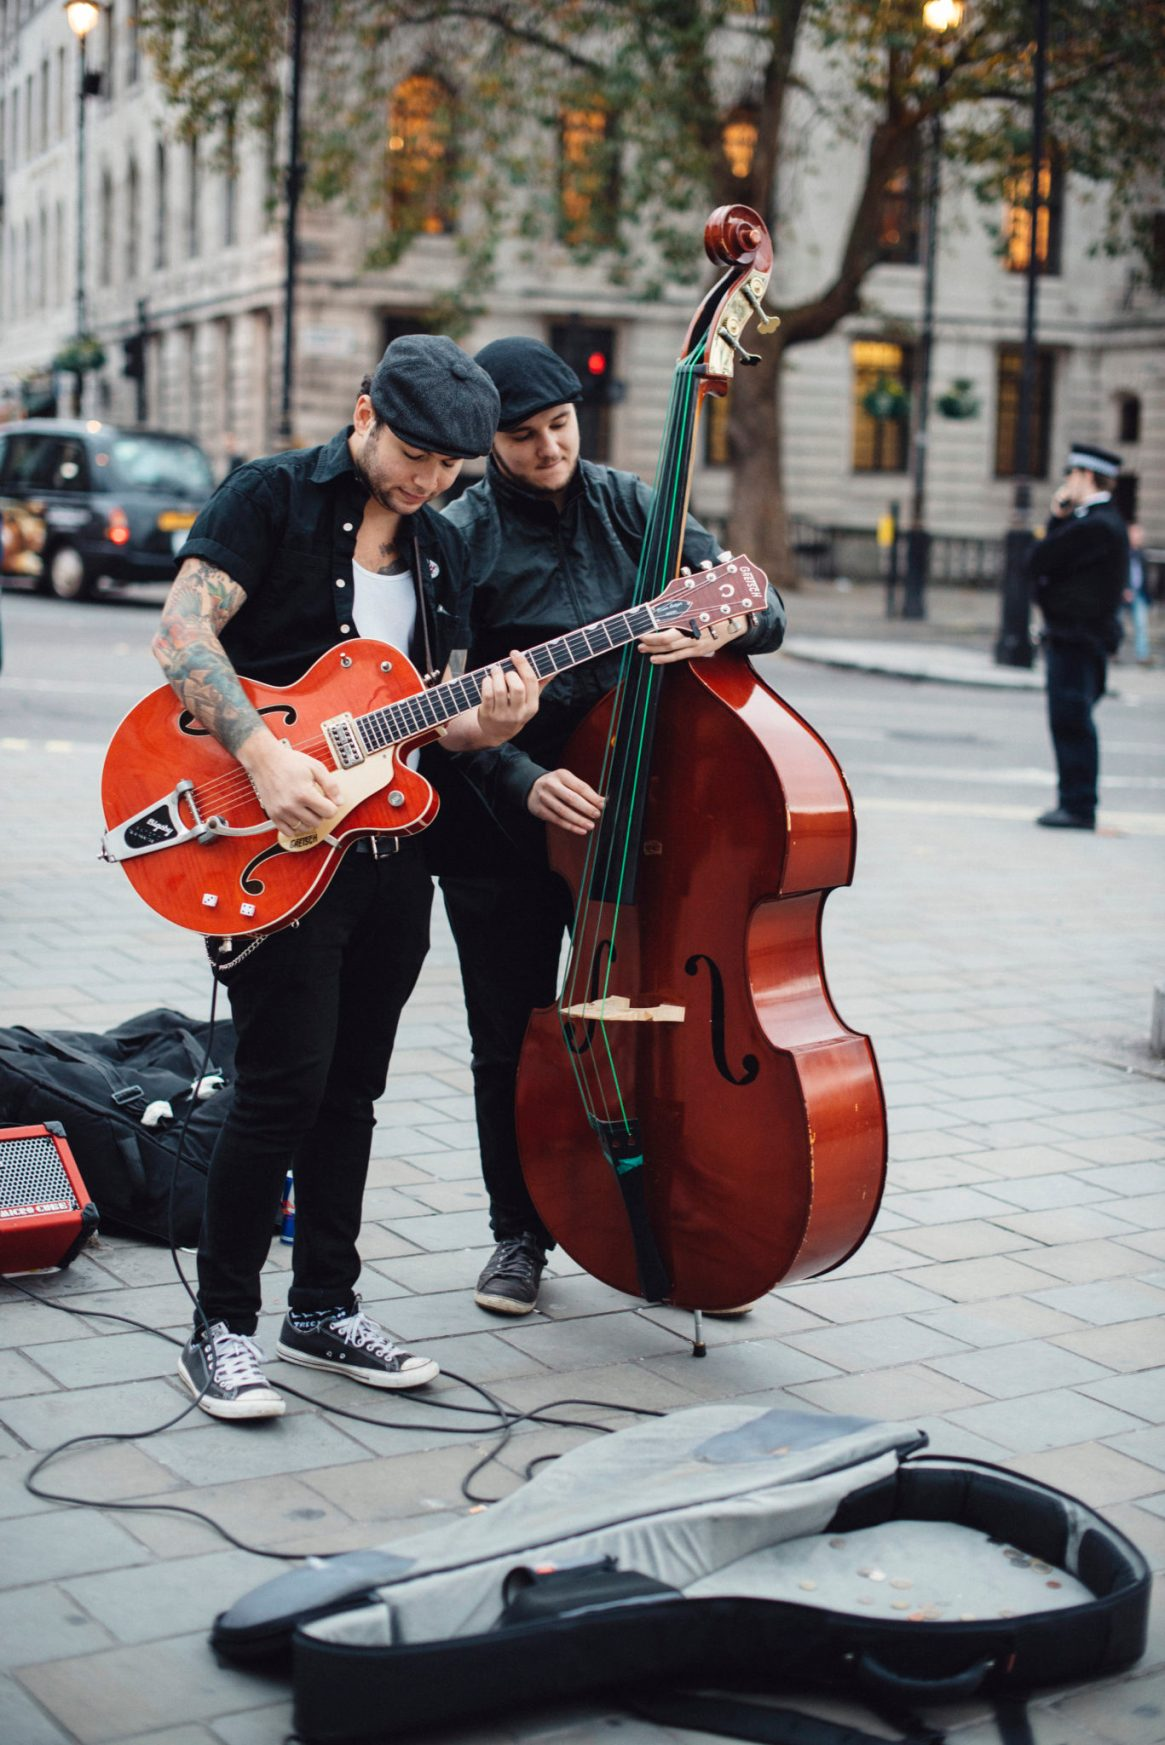 Two stylish musicians busking with guitar and double bass on Trafalgar Square in London